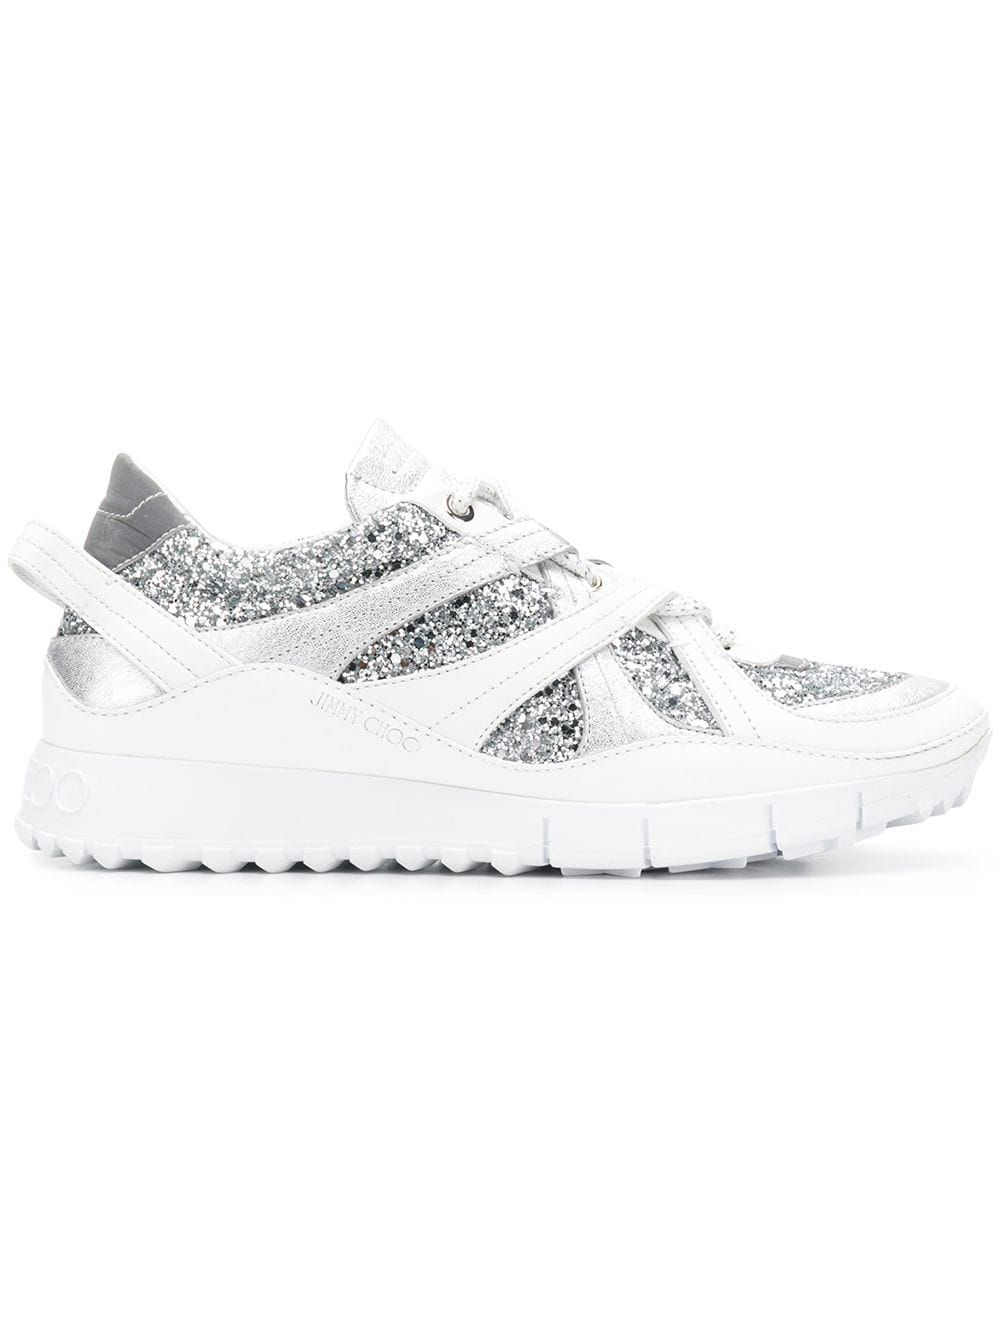 Seattle Sneakers Jimmy Choo farfetch.com $695.00 SHOP NOW Proof that razzle-dazzle can come in comfy form.